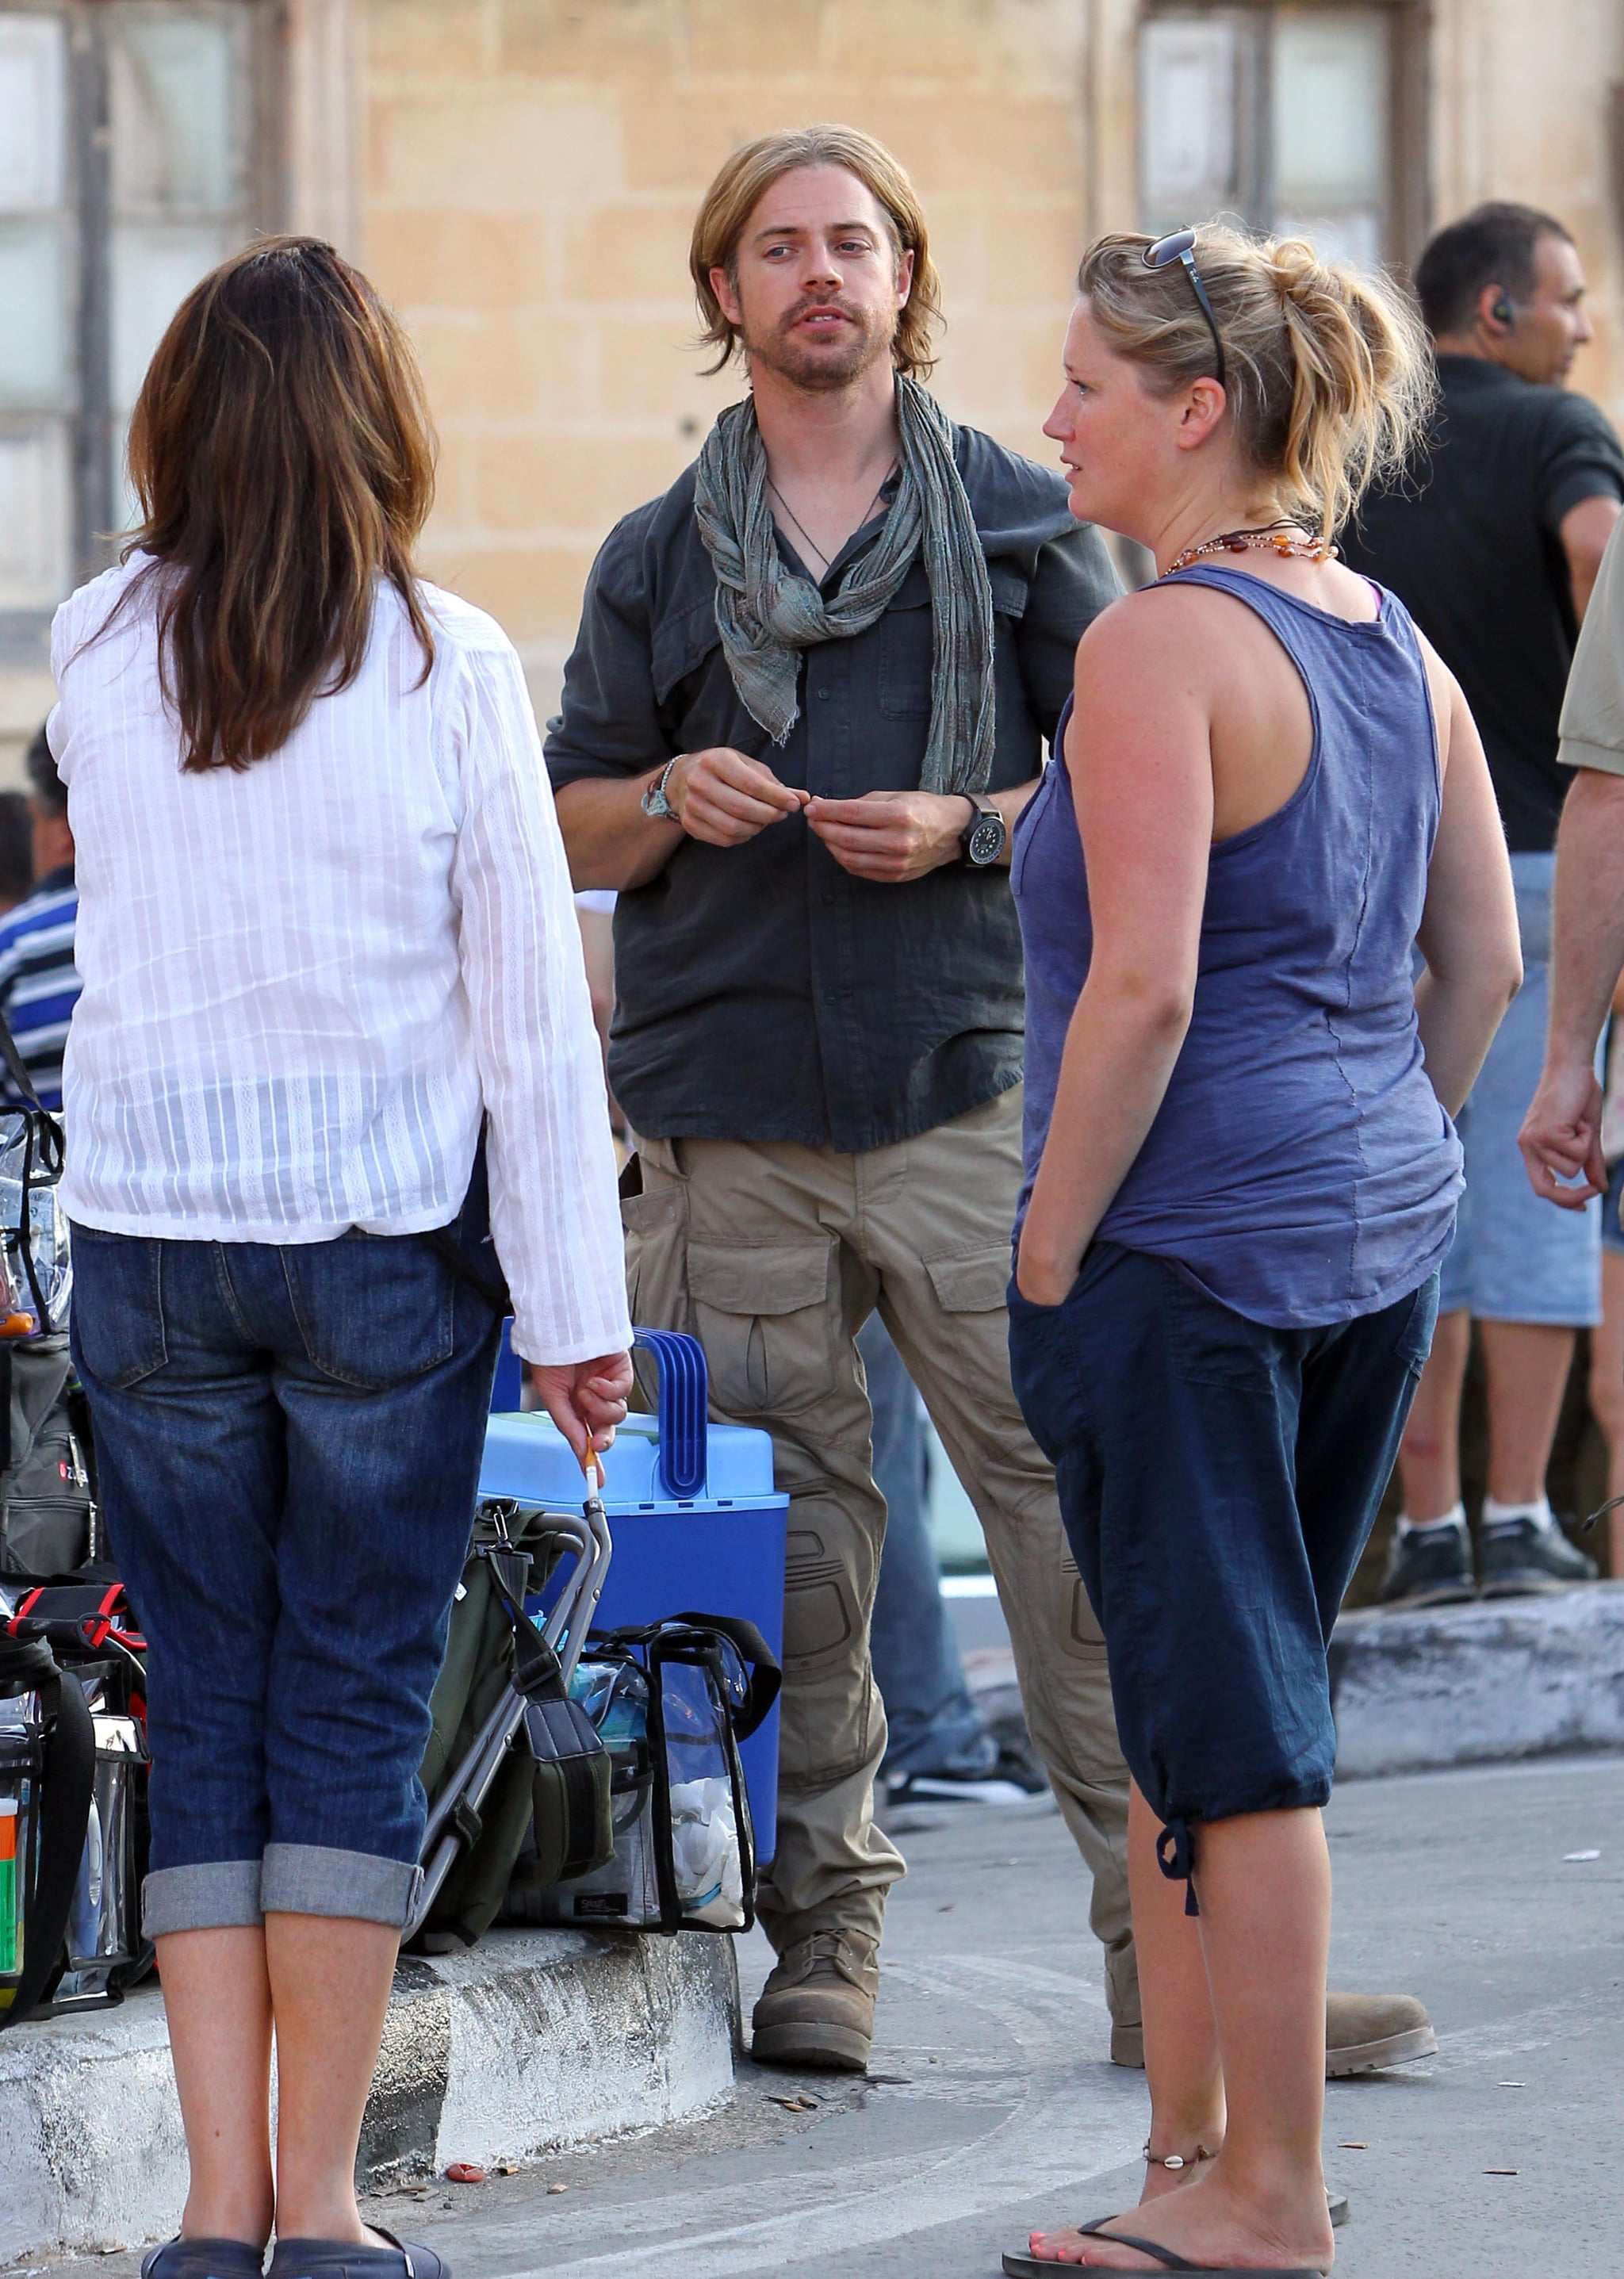 Brad Pitt's stunt double chatted with the crew between scenes.